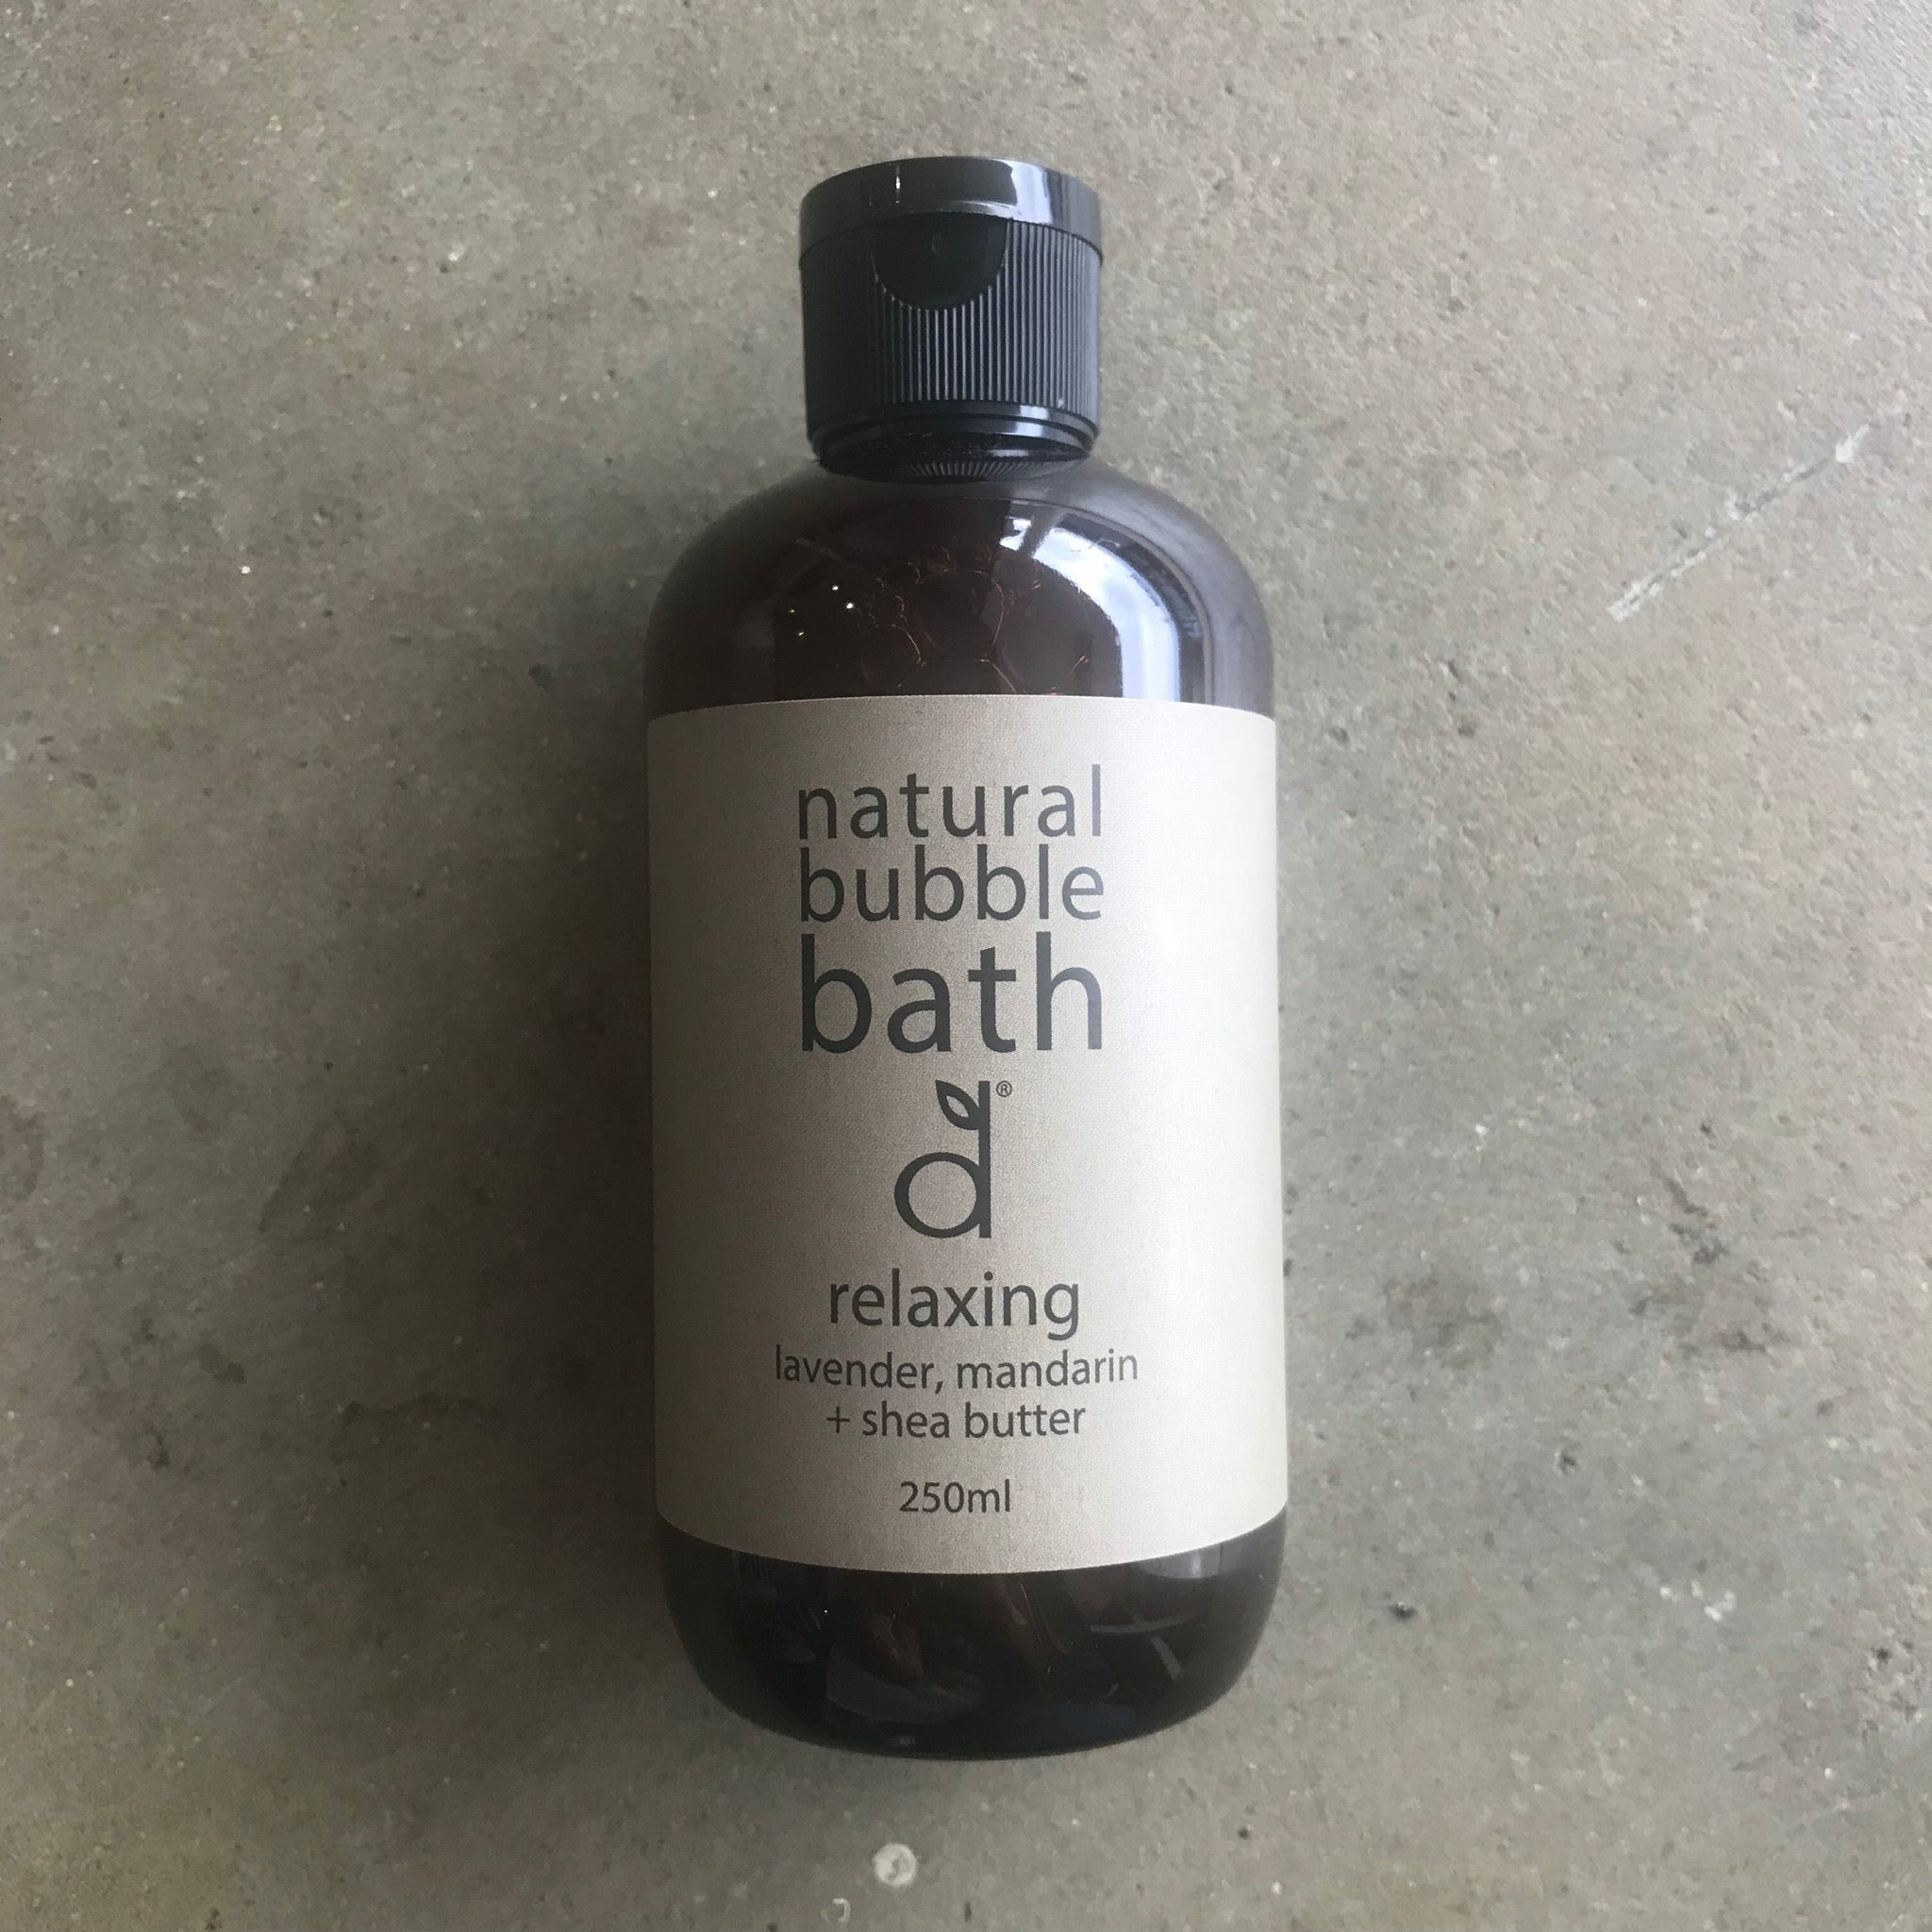 Dindi - Natural 'Relaxing' Bubble Bath